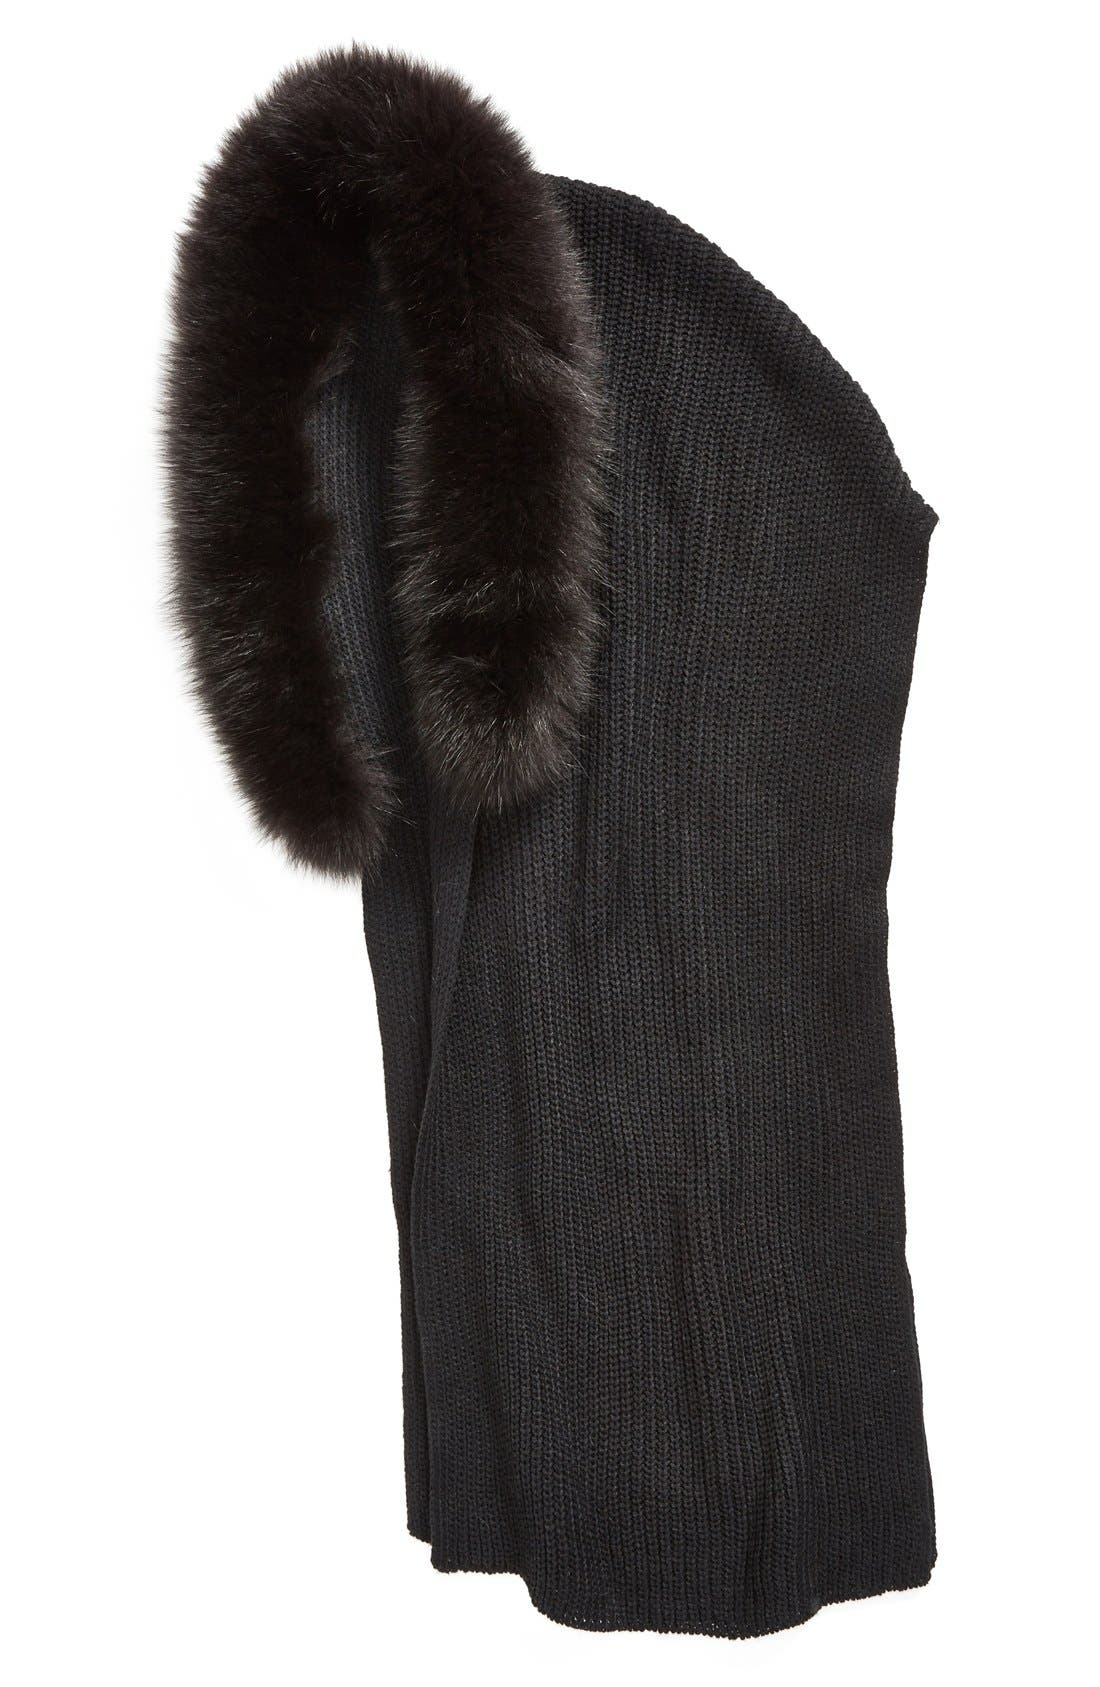 Hooded Scarf with Genuine Fox Fur Trim,                             Alternate thumbnail 2, color,                             001